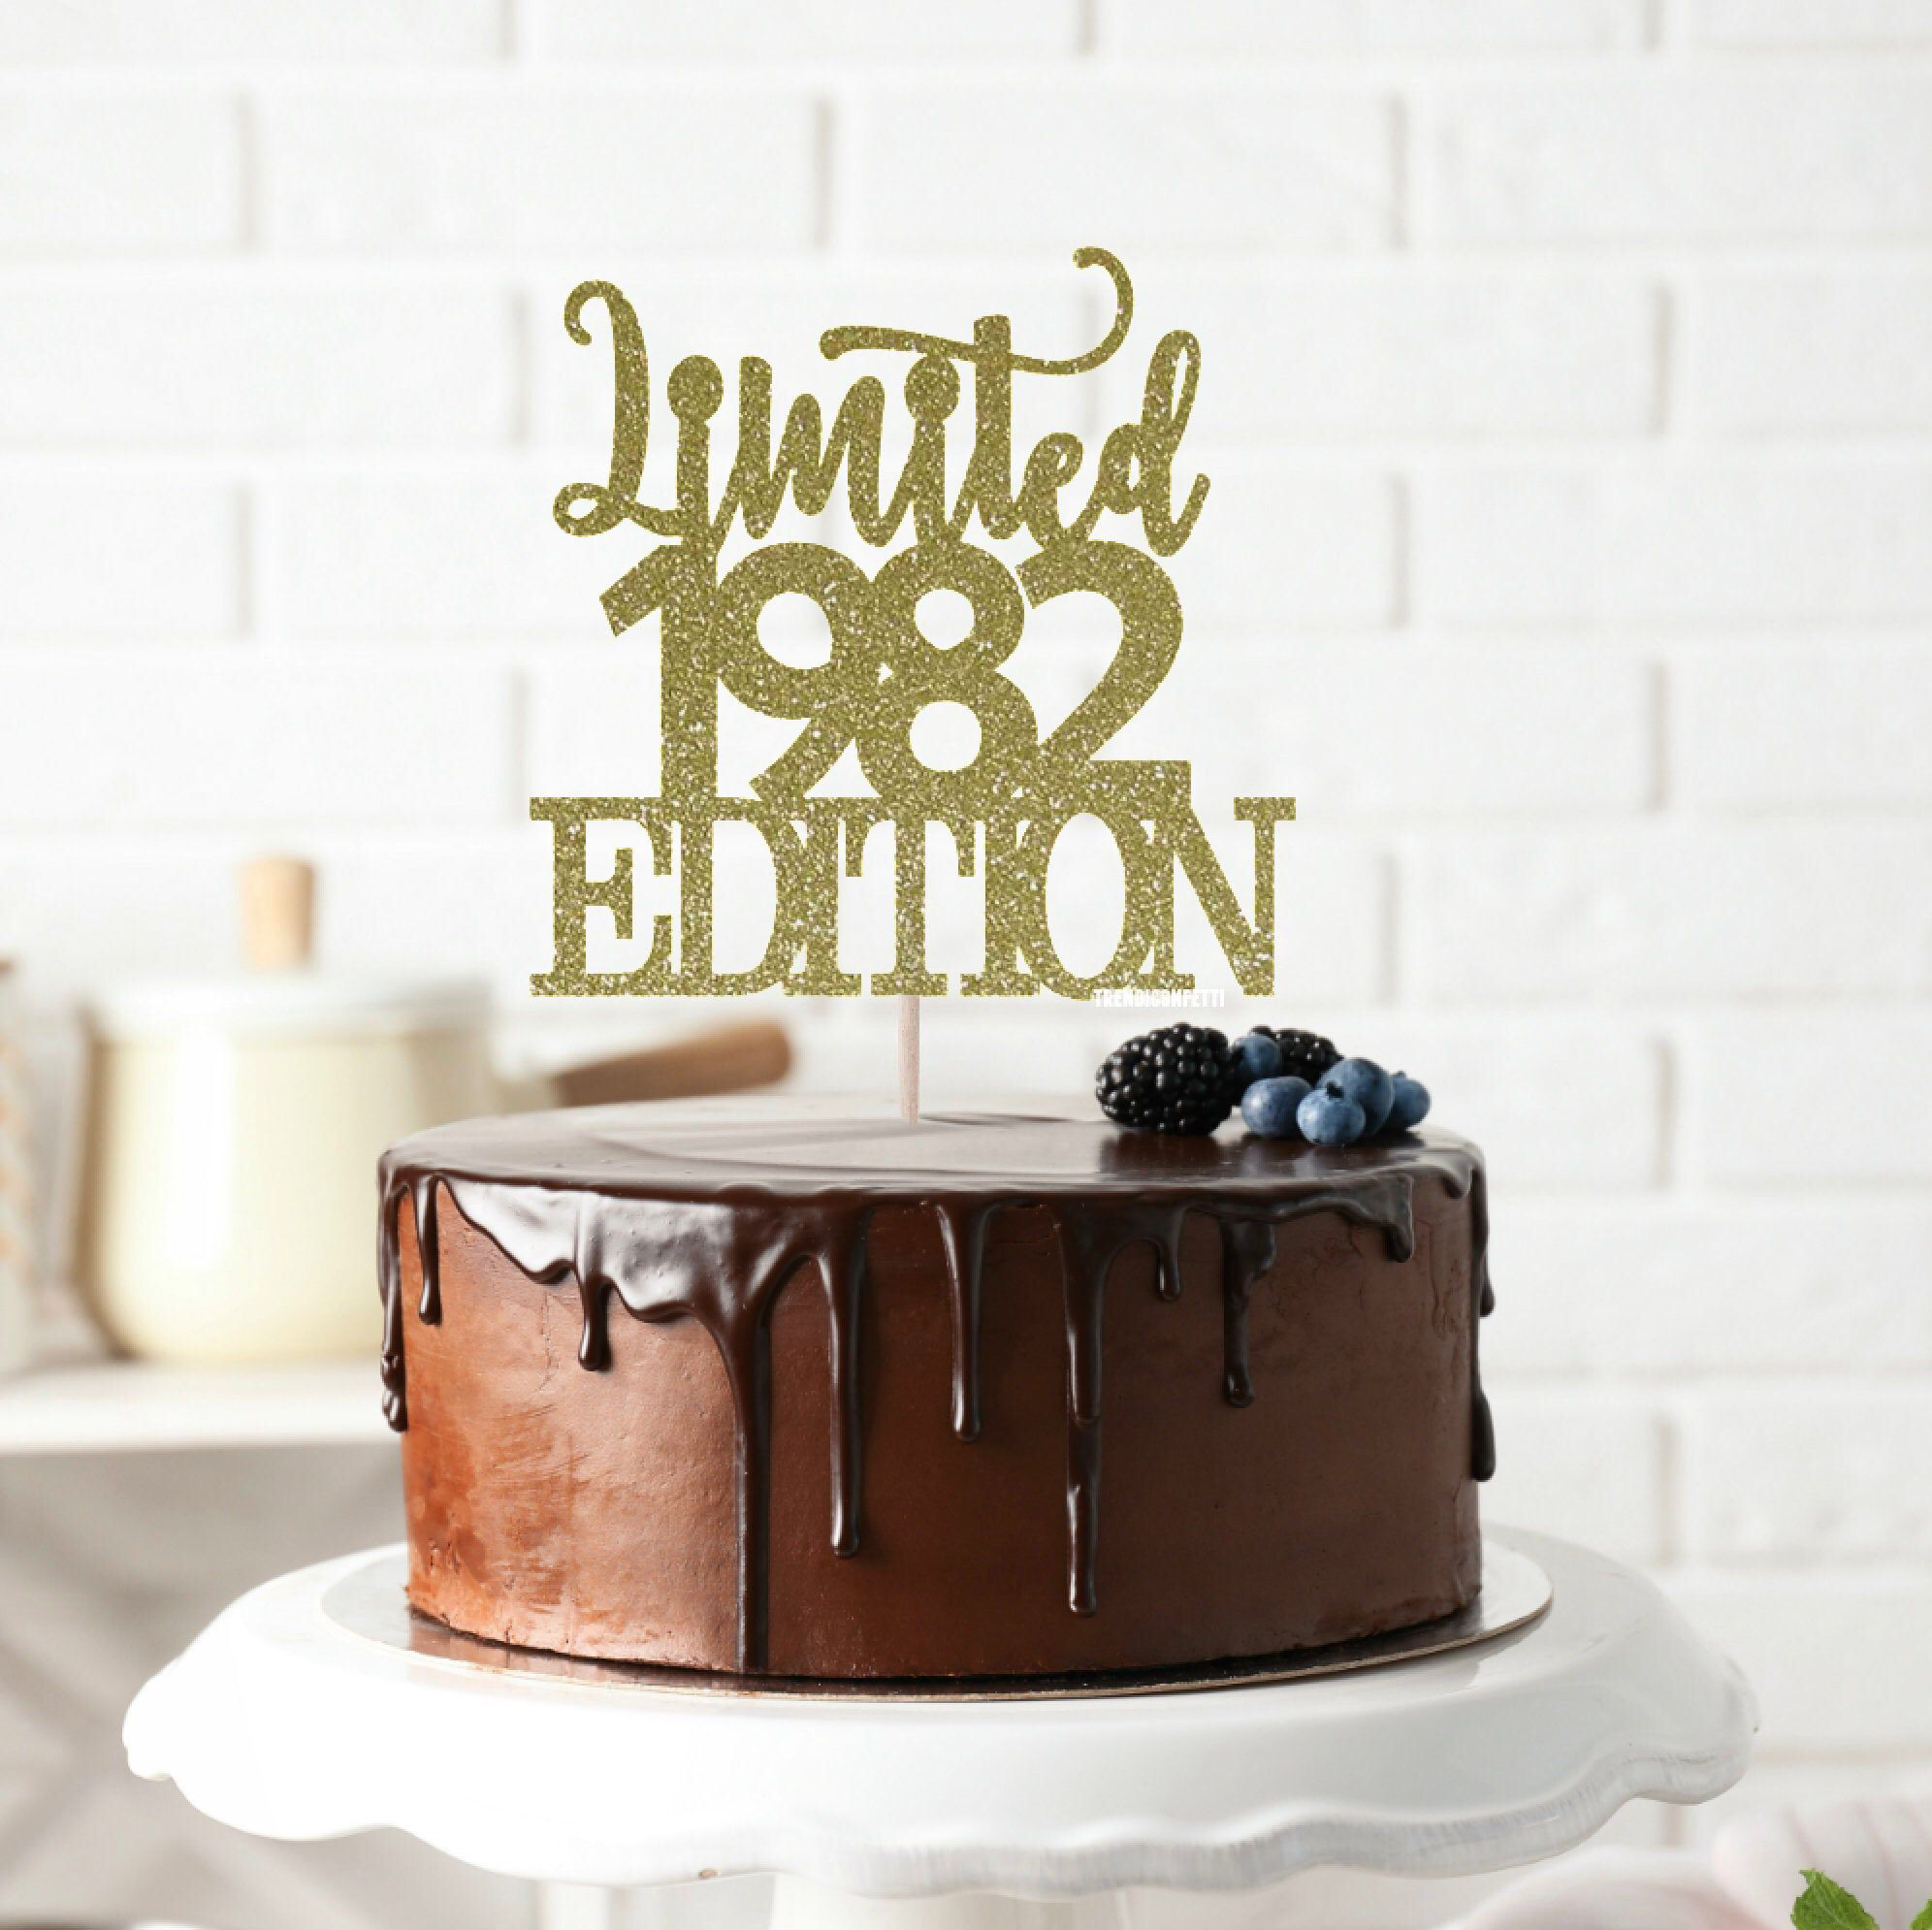 Limited 1982 Edition Cake Topper 38 Years Loved Cake Topper 38th